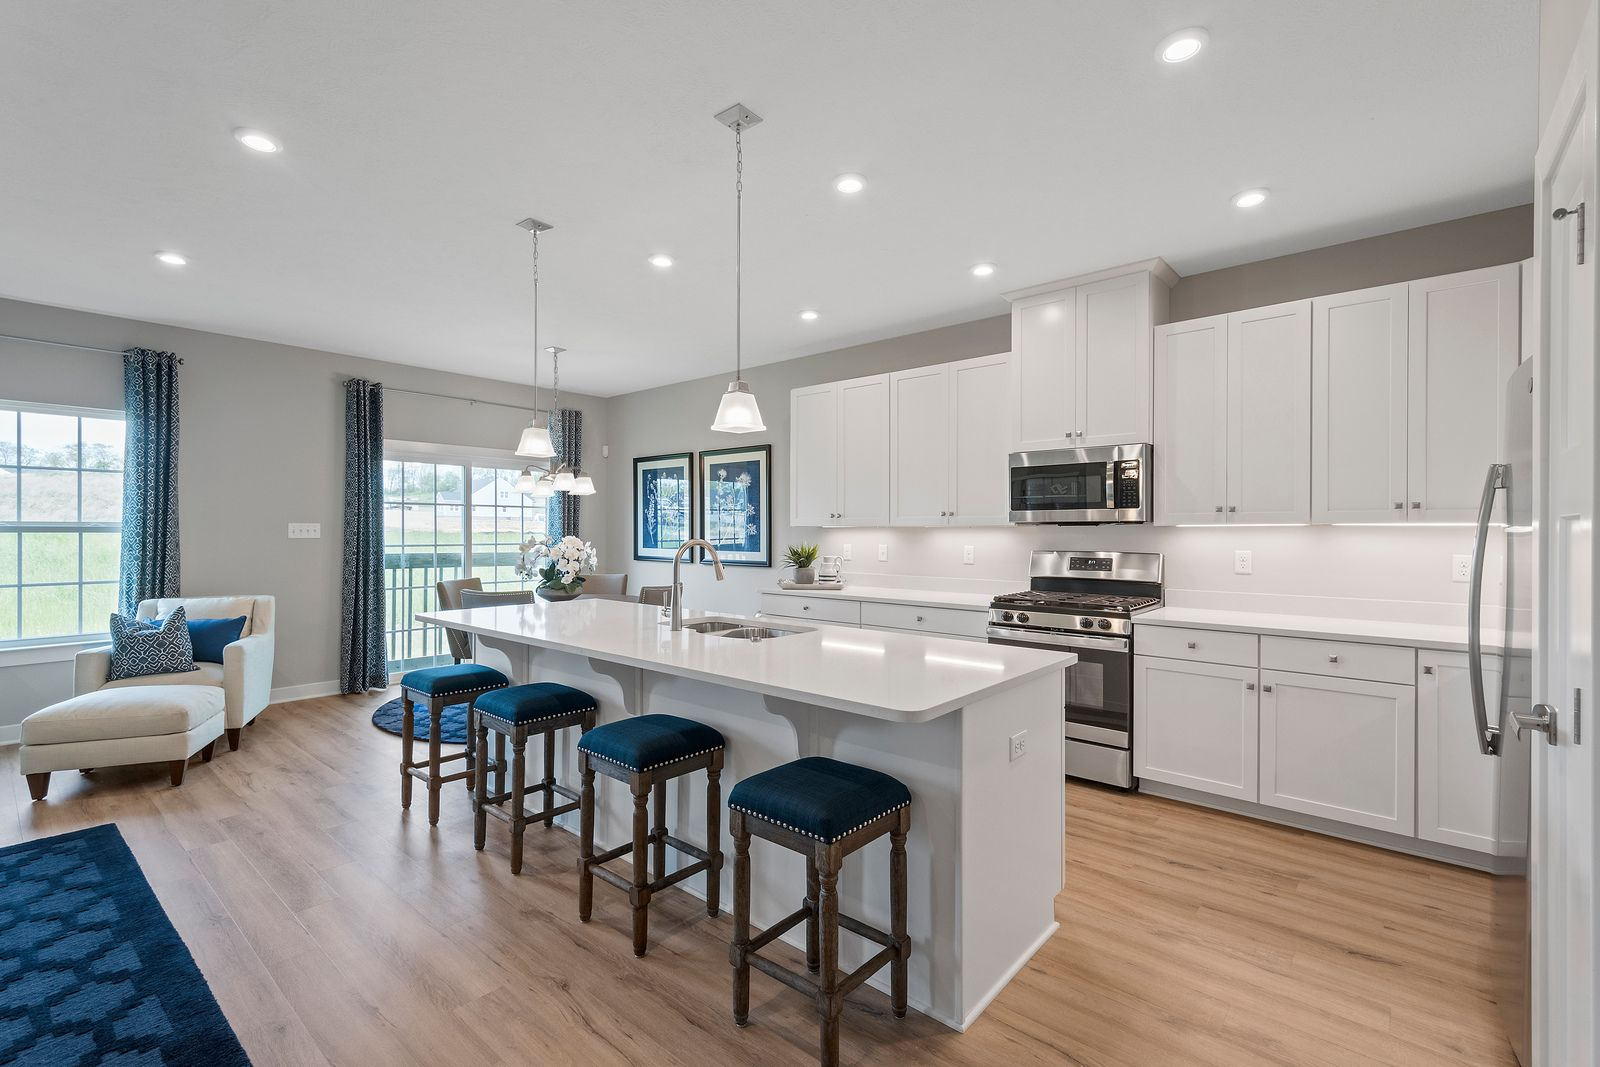 Kitchen featured in the Andover By Ryan Homes in Nashville, TN